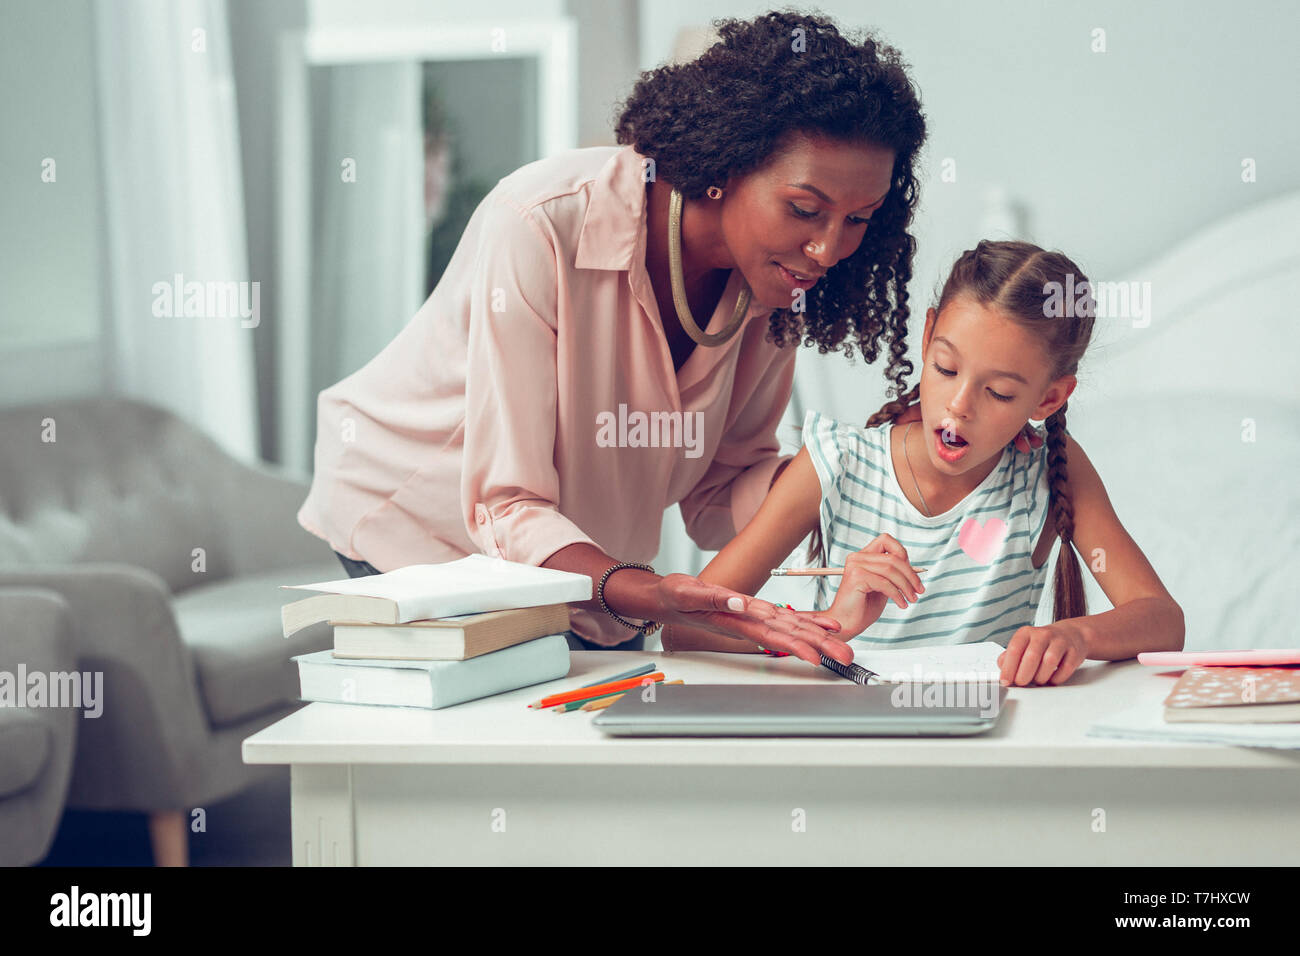 Beautiful curly-haired mother calmly explaining to daughter school homework tasks. - Stock Image